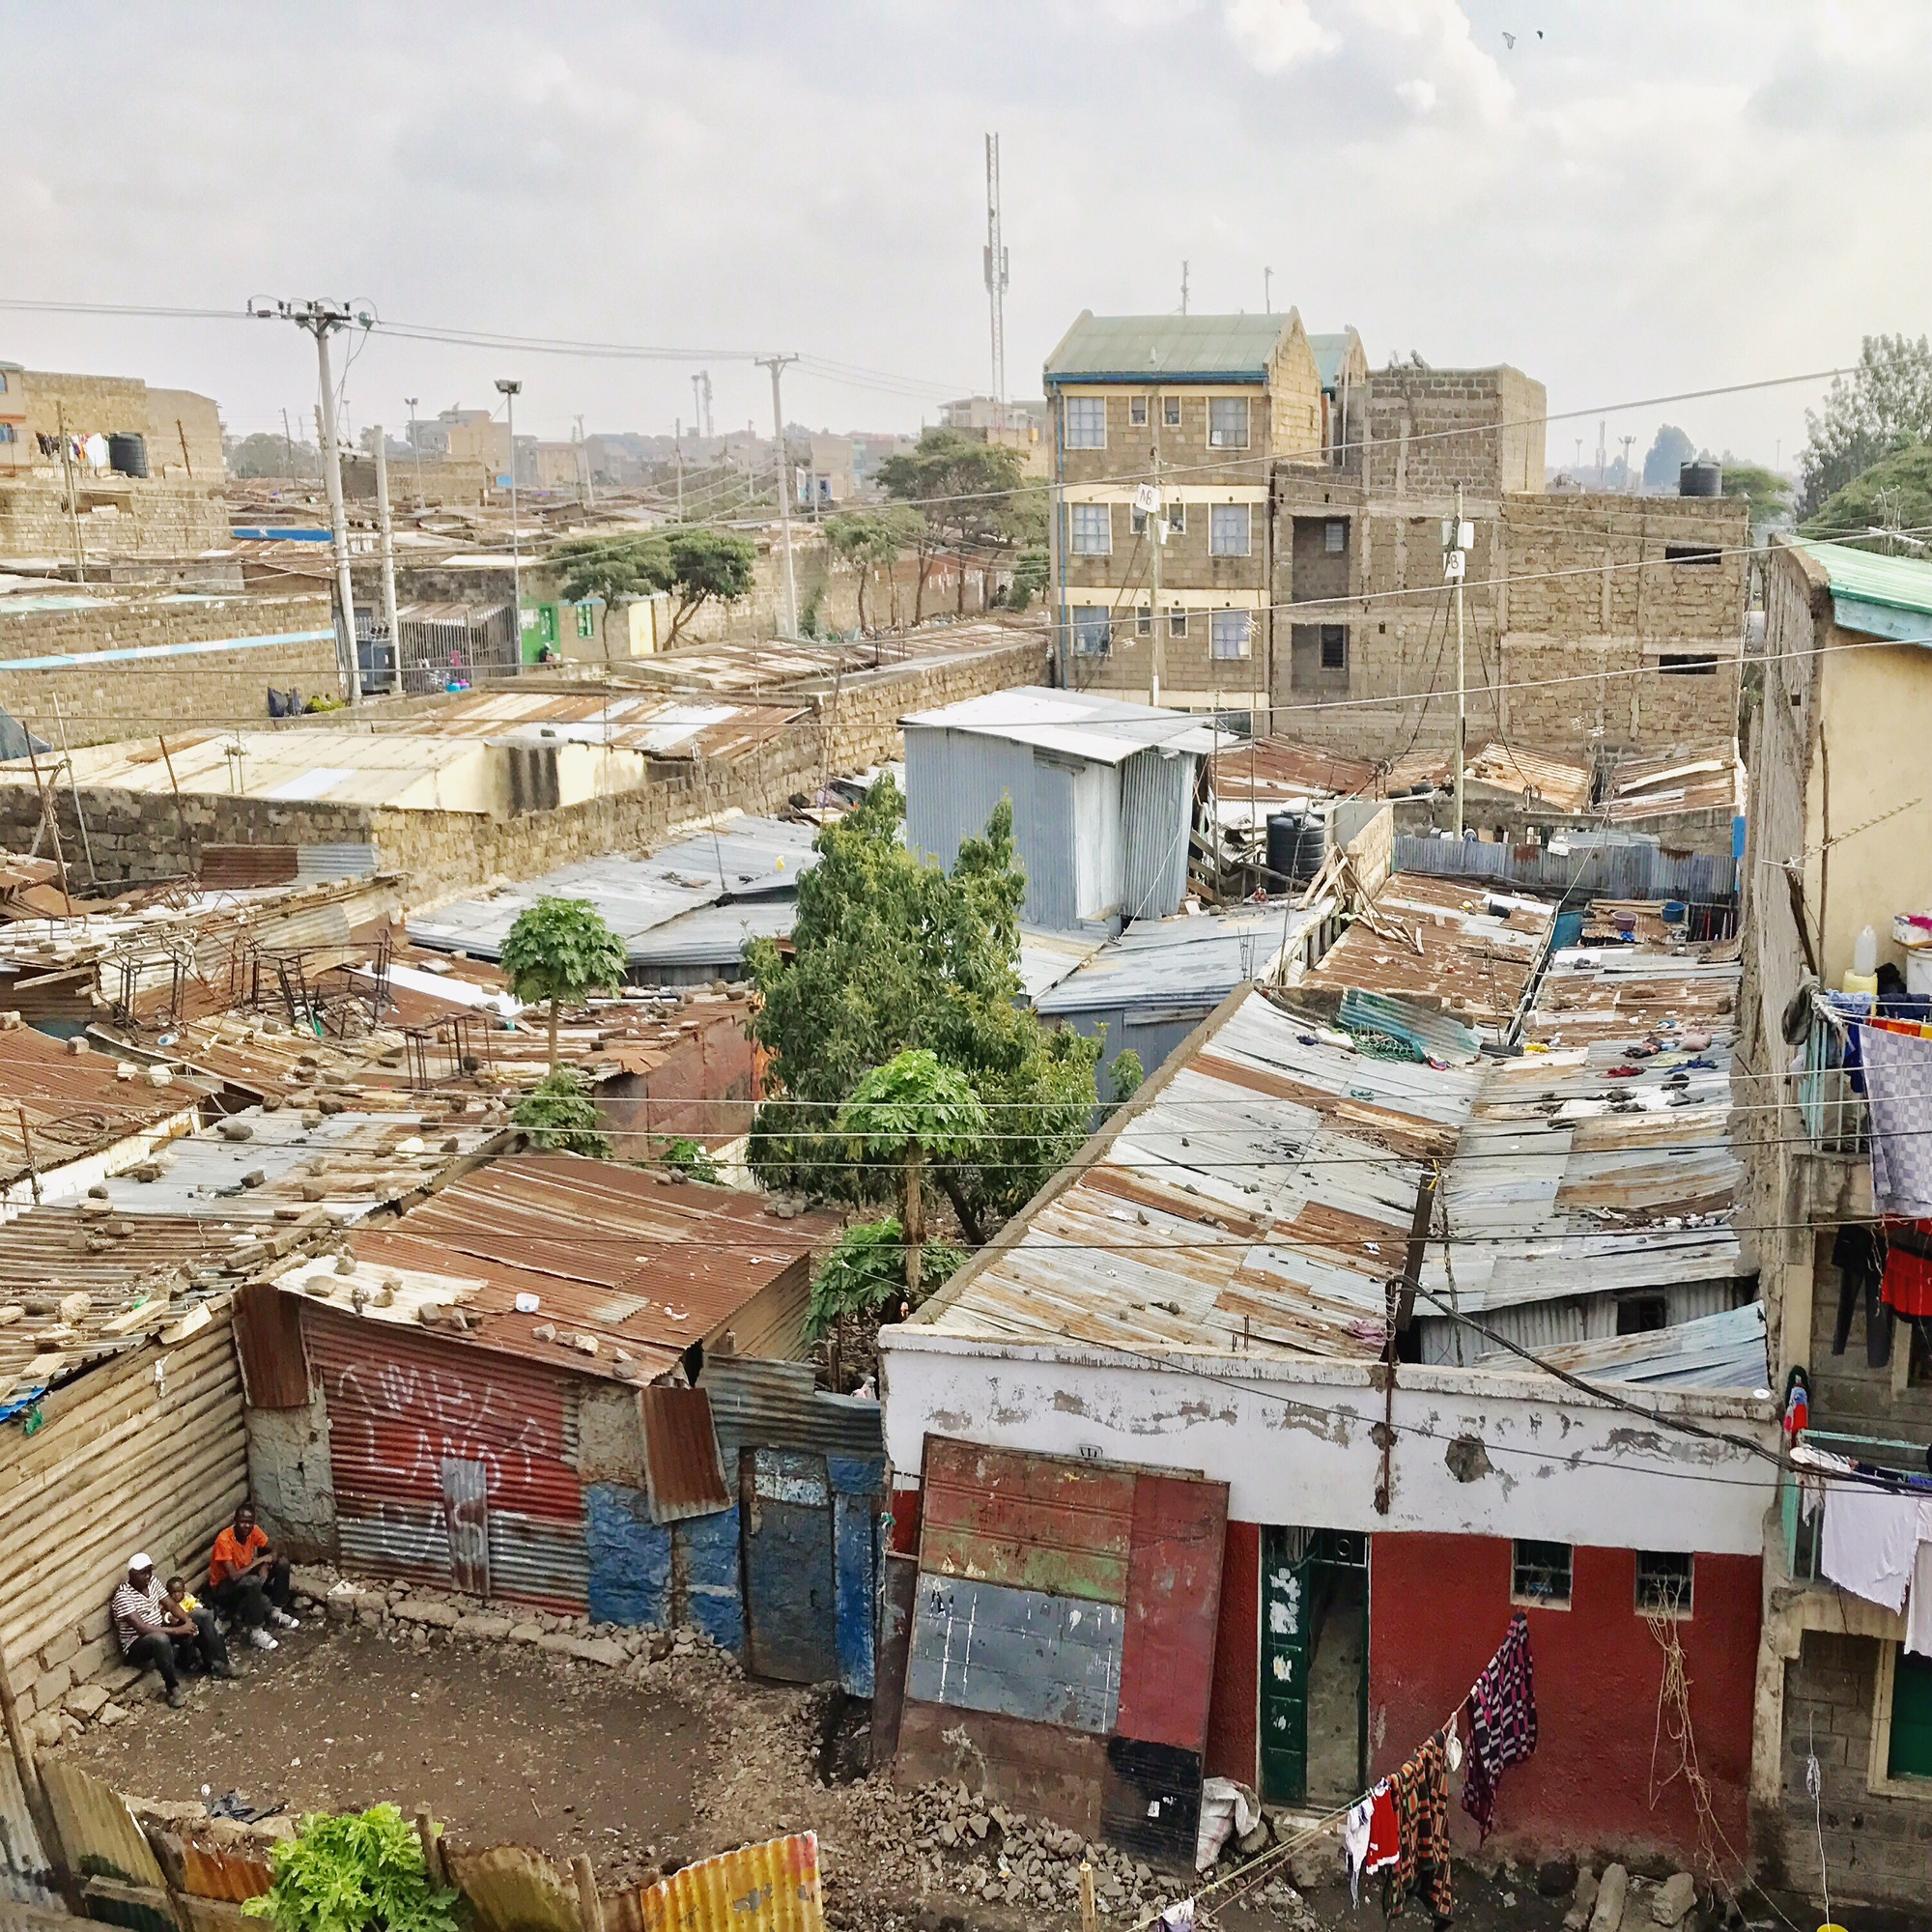 A view of the Dandora community from the top floor of Dandora PEFA Church.